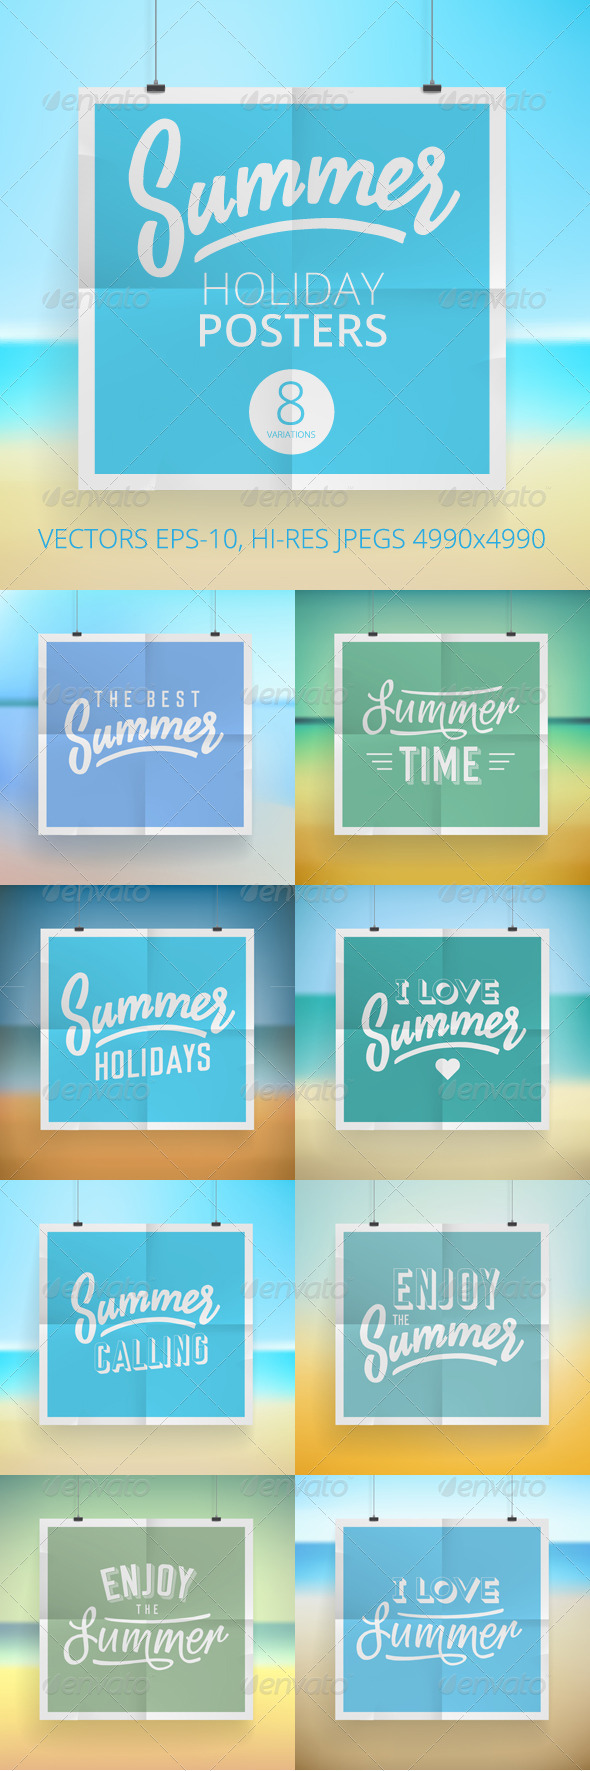 GraphicRiver Summer Holiday Posters 7947856